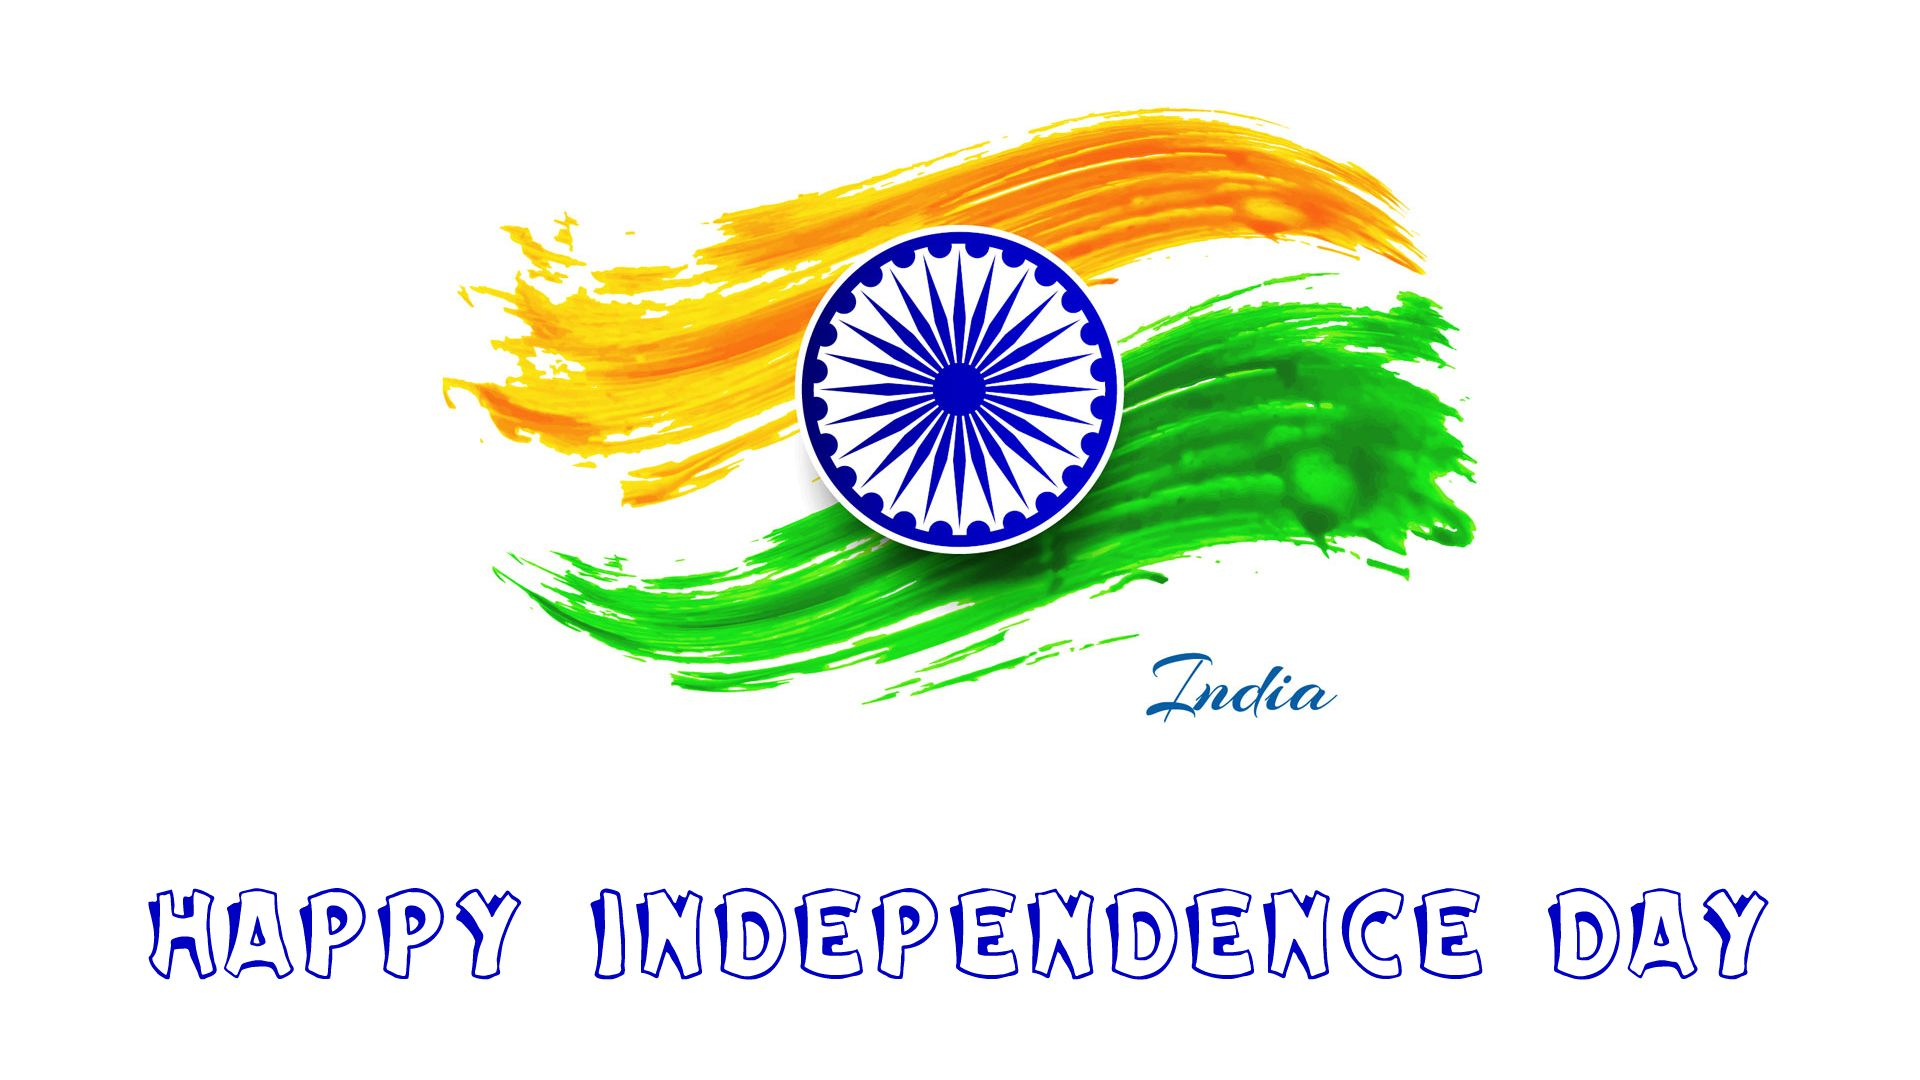 Indian Independence Day Images Indian Independence Day Images